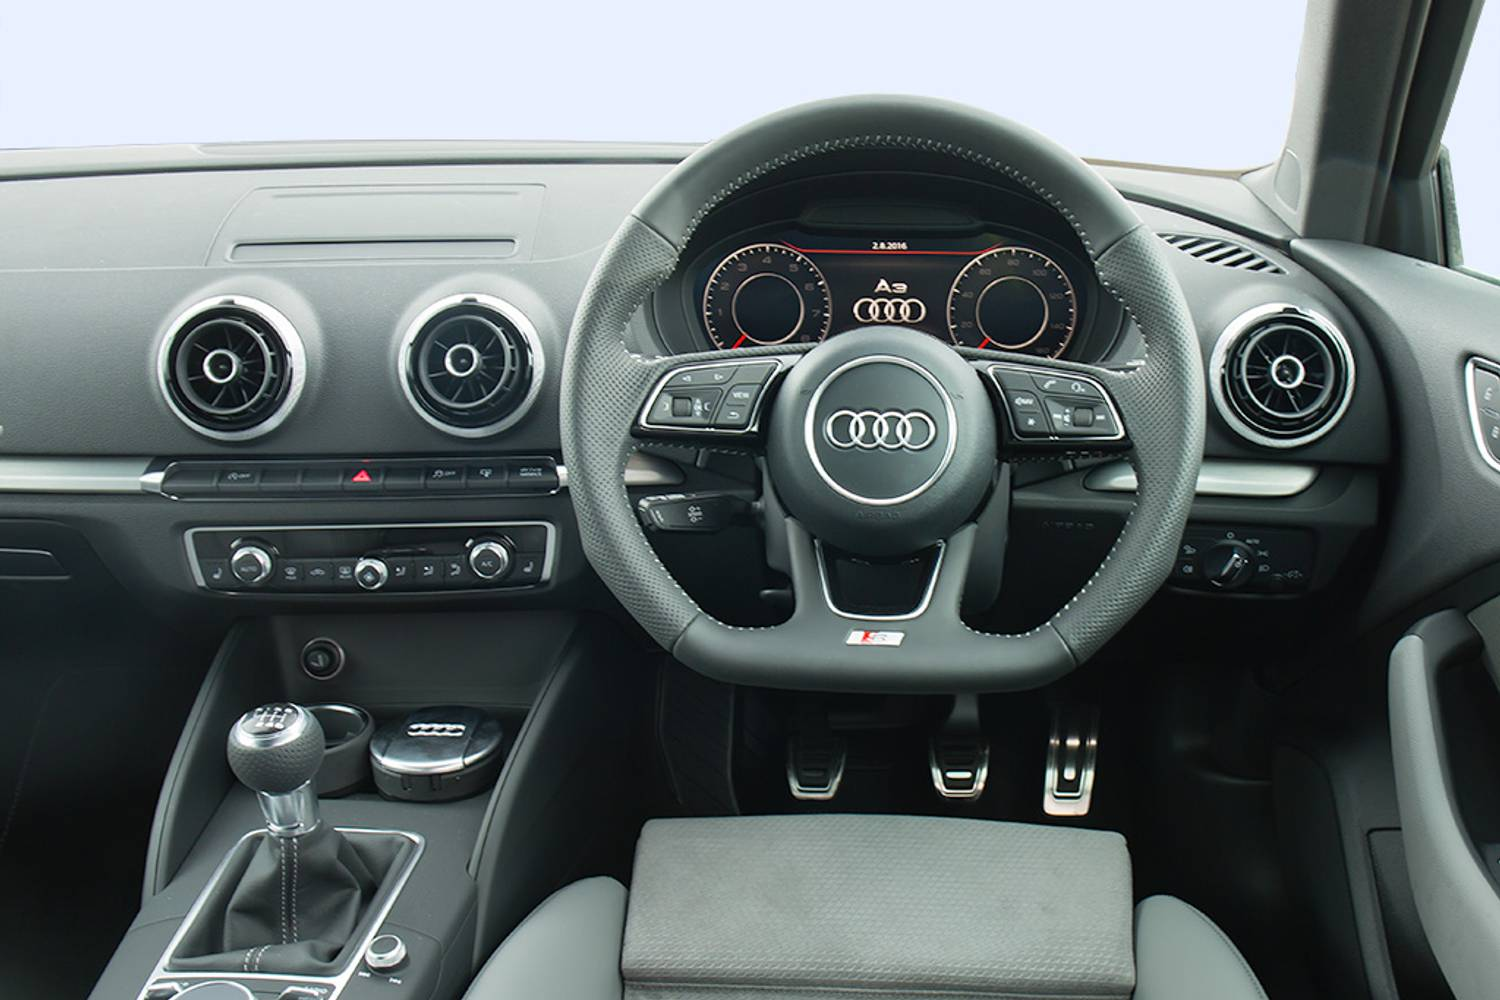 new audi a3 sportback special editions 1 6 tdi 116 ps black edition 5 door s tronic 2017. Black Bedroom Furniture Sets. Home Design Ideas